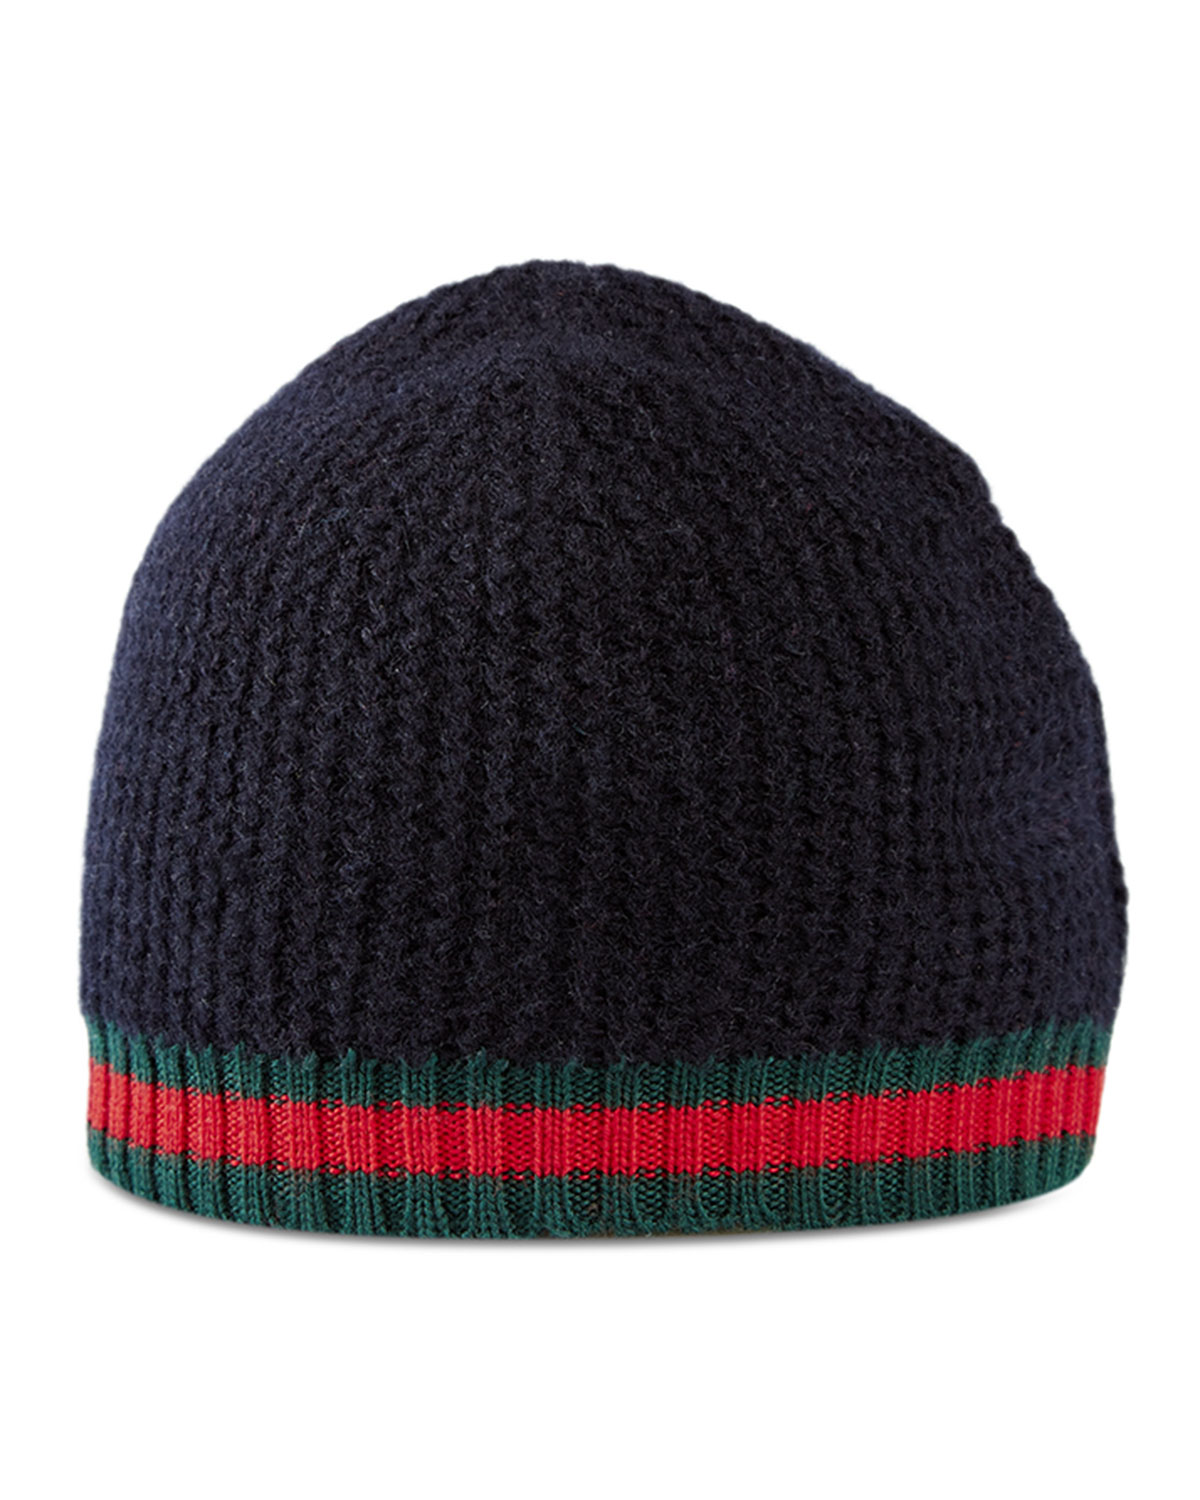 Gucci Cashmere Baby Hat  a337f9aa94f